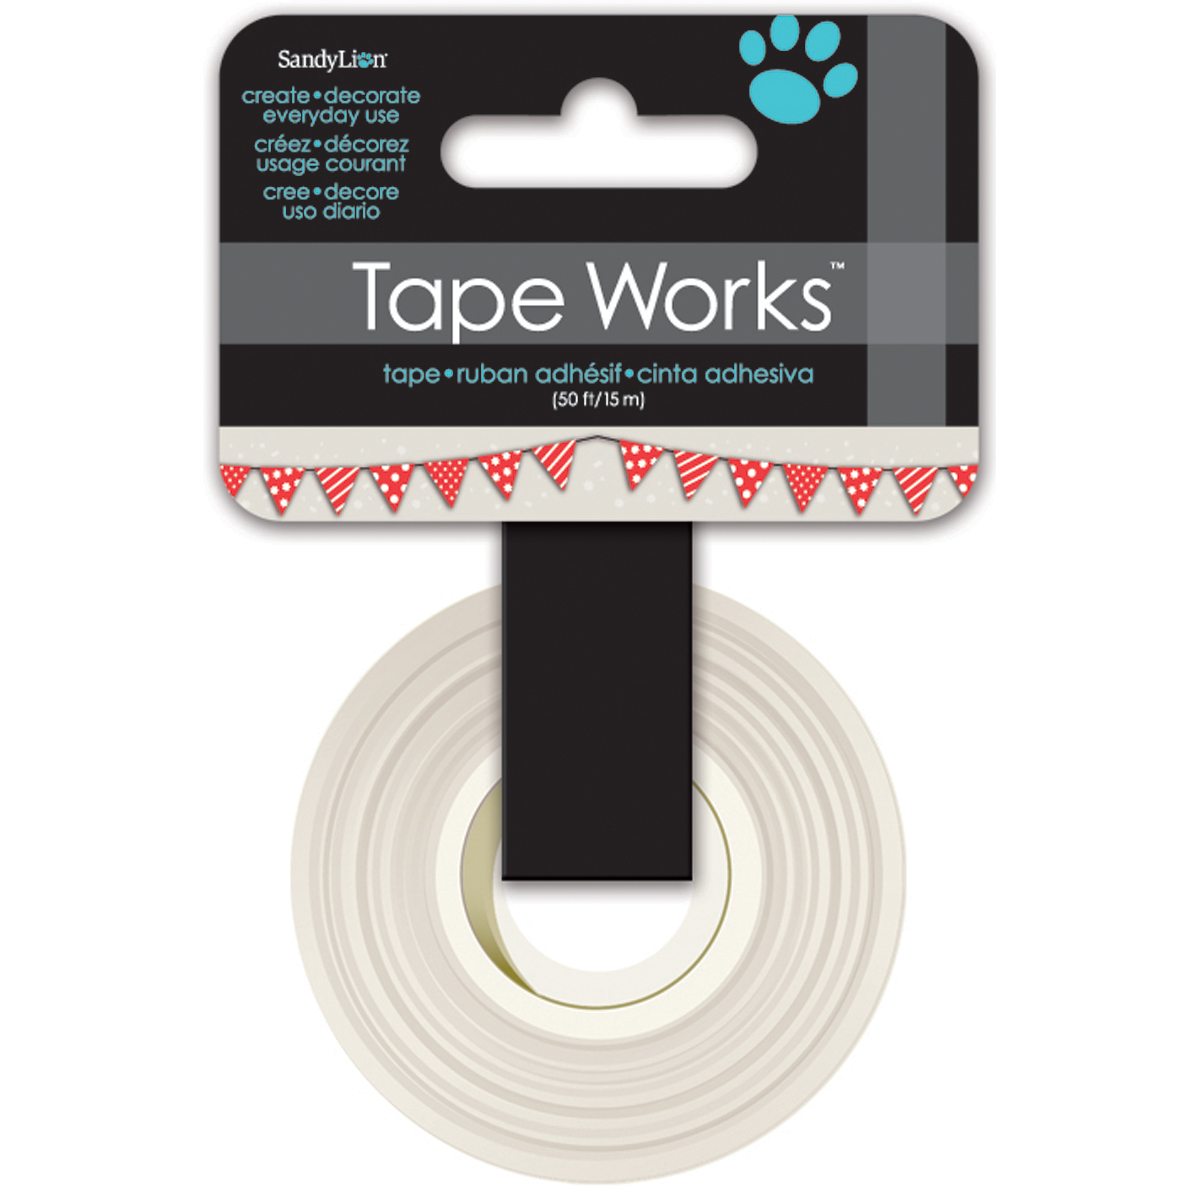 Tape Works Tape .625 Inch X 50ft-Bunting, Red